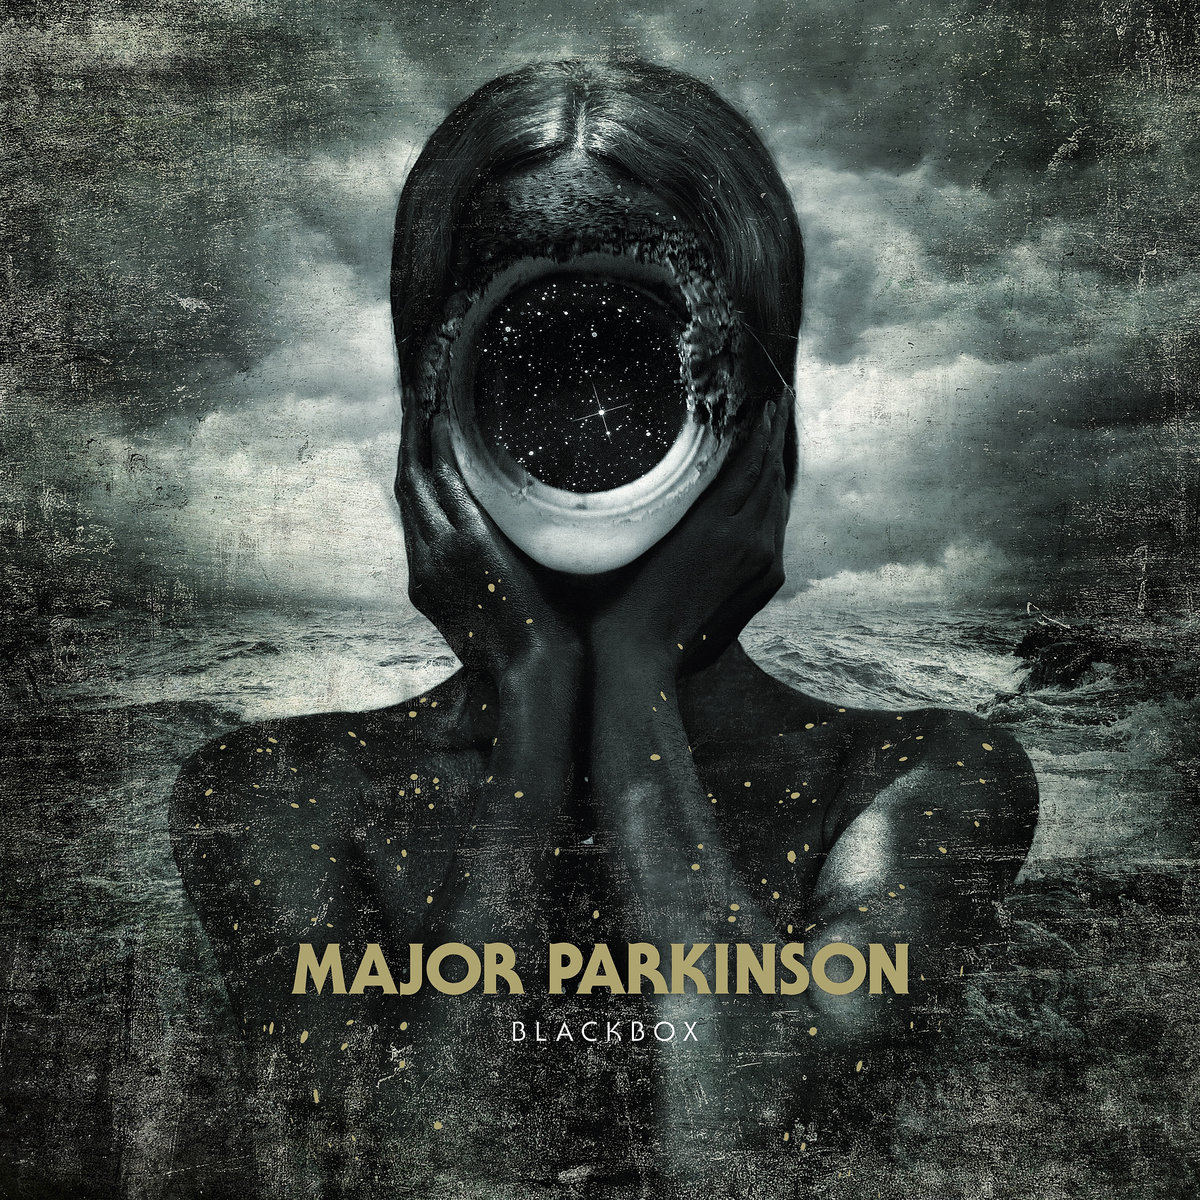 Major Parkinson: Blackbox